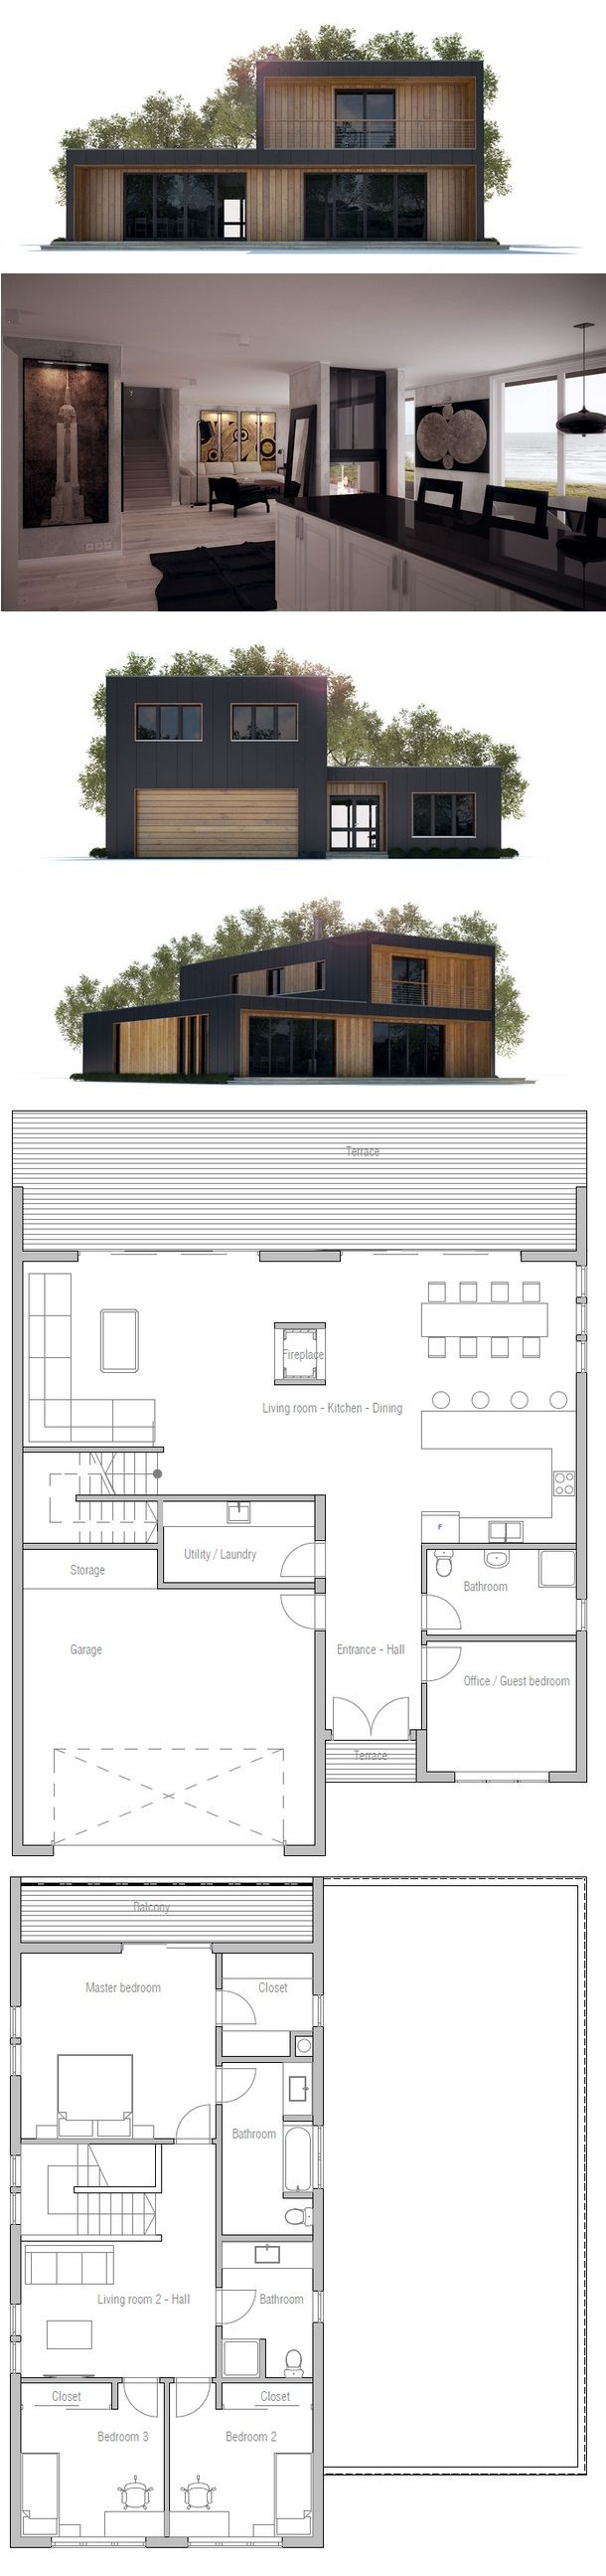 202 best First House 3d plans images on Pinterest | Home ideas, Home ...